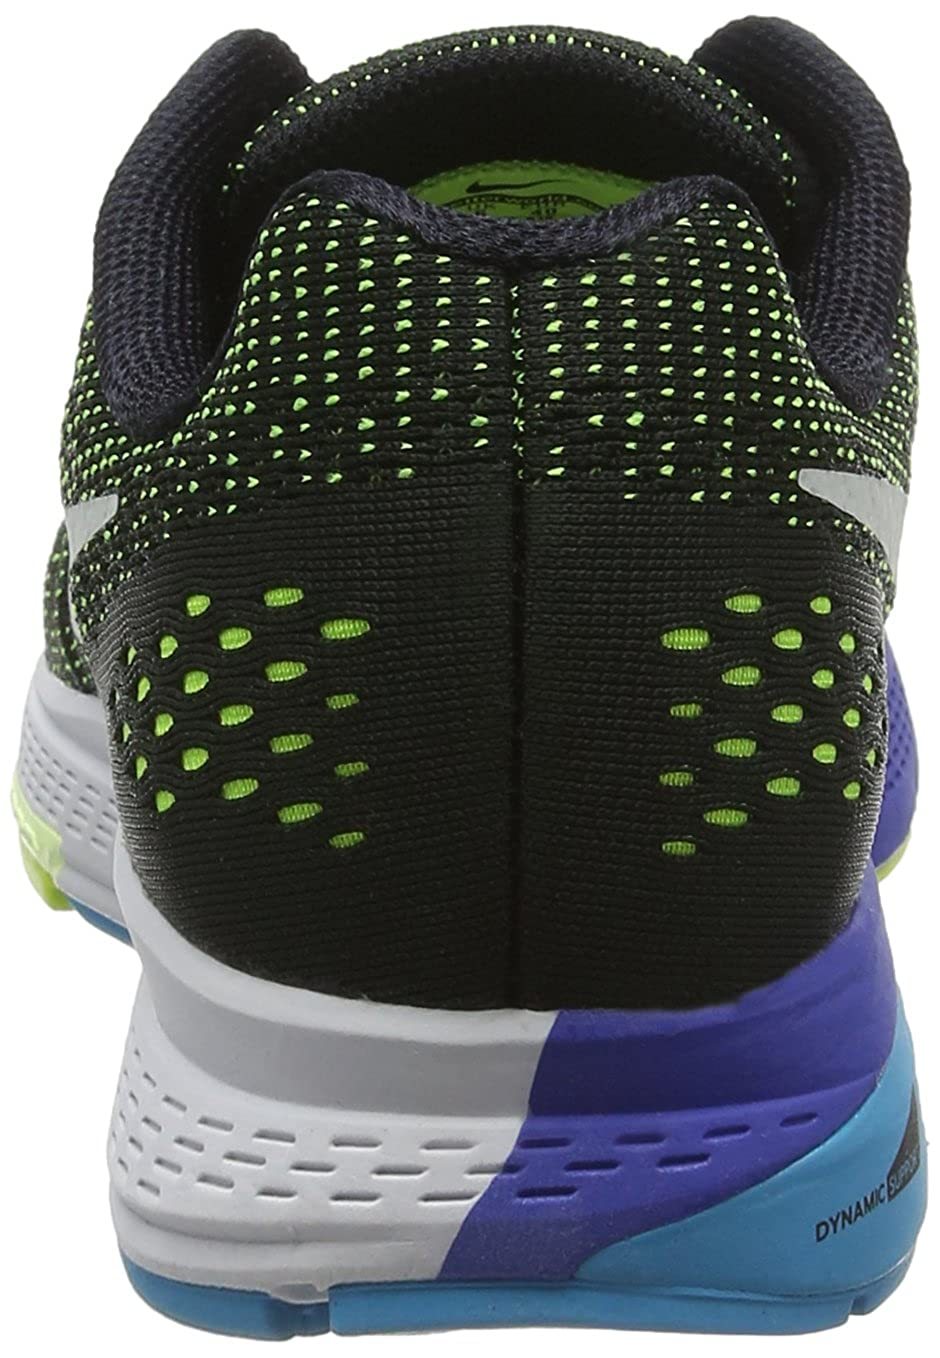 new arrival ab509 d5f82 Nike Air Zoom Structure 19, Chaussures de Running Homme  Amazon.fr   Chaussures et Sacs